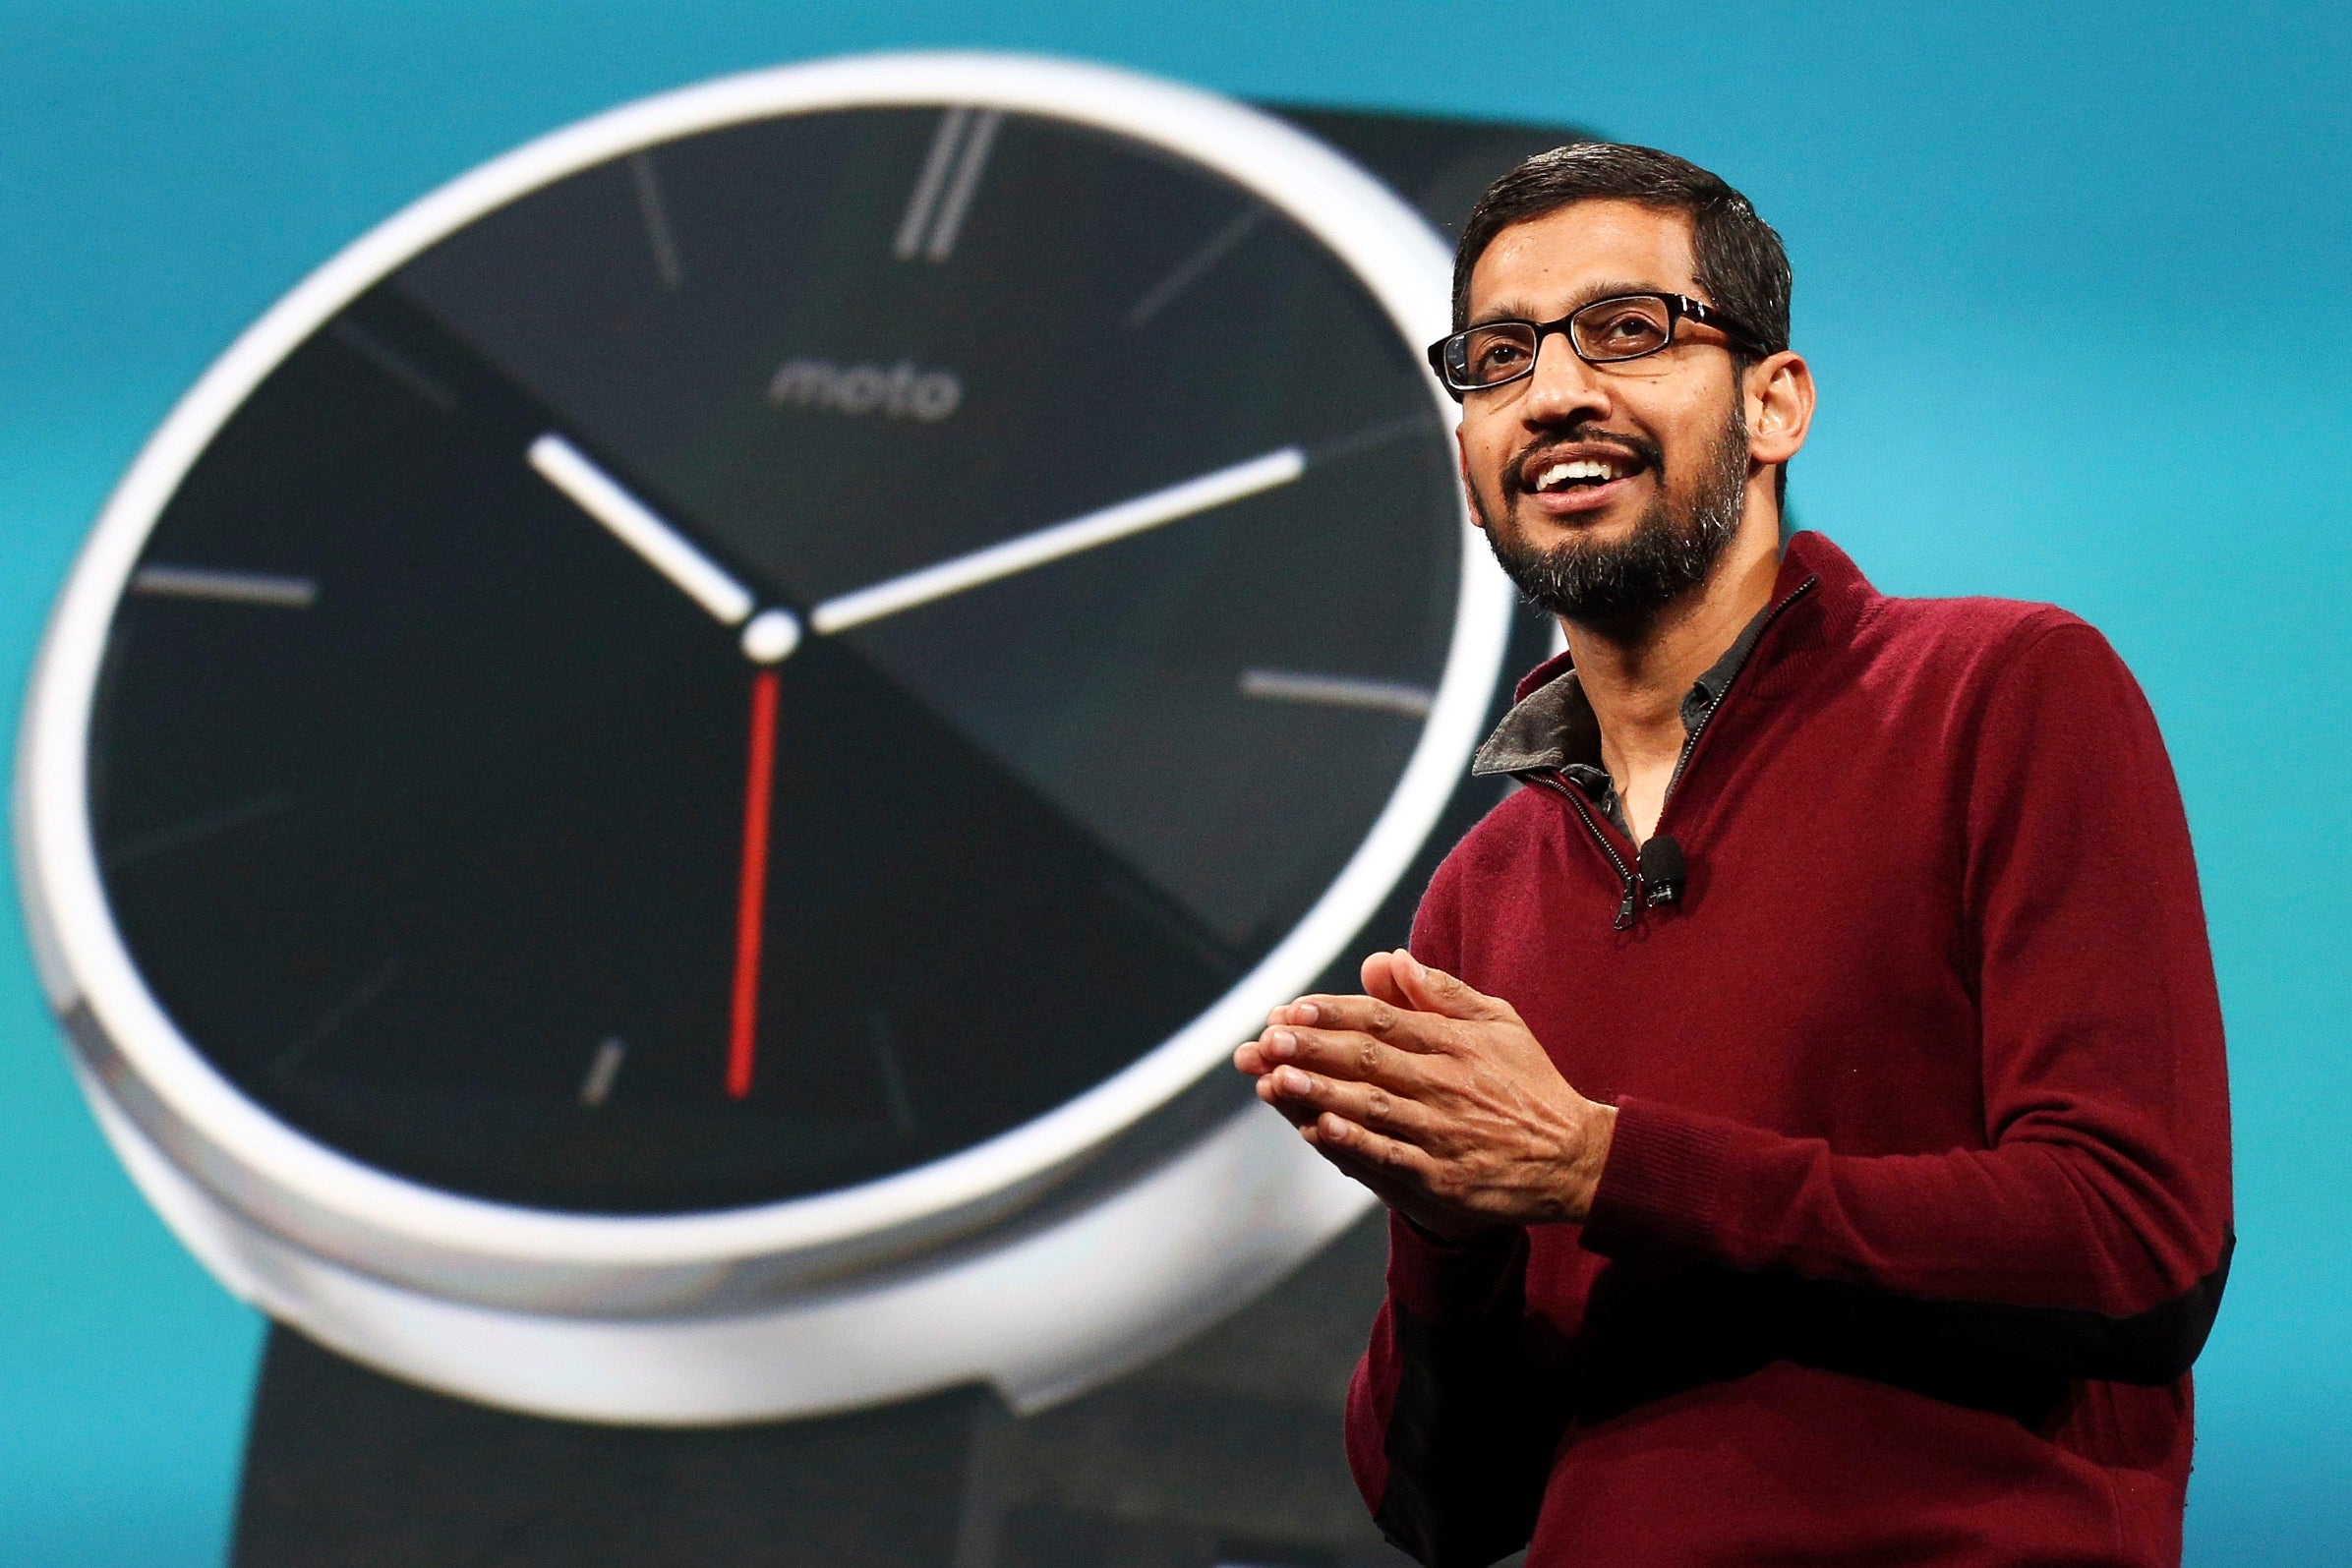 Google Android Wear smartwatch to be released soon, leak claims, ready to take on the Apple Watch